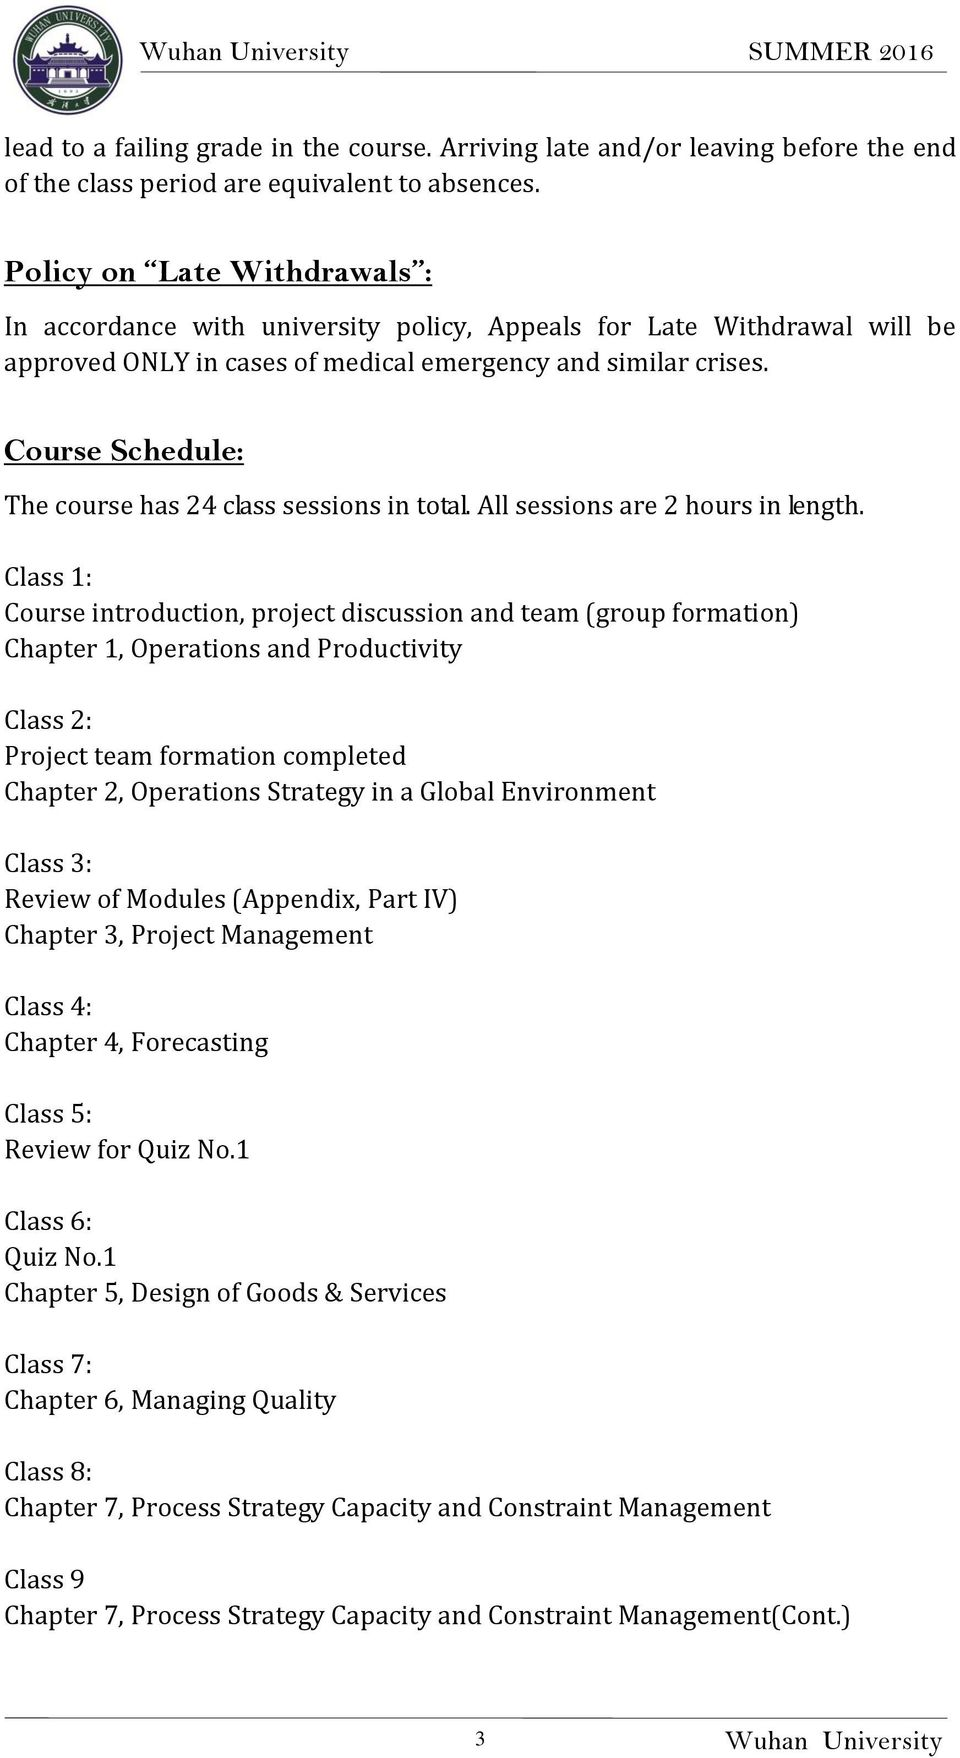 Course Schedule: The course has 24 class sessions in total. All sessions are 2 hours in length.